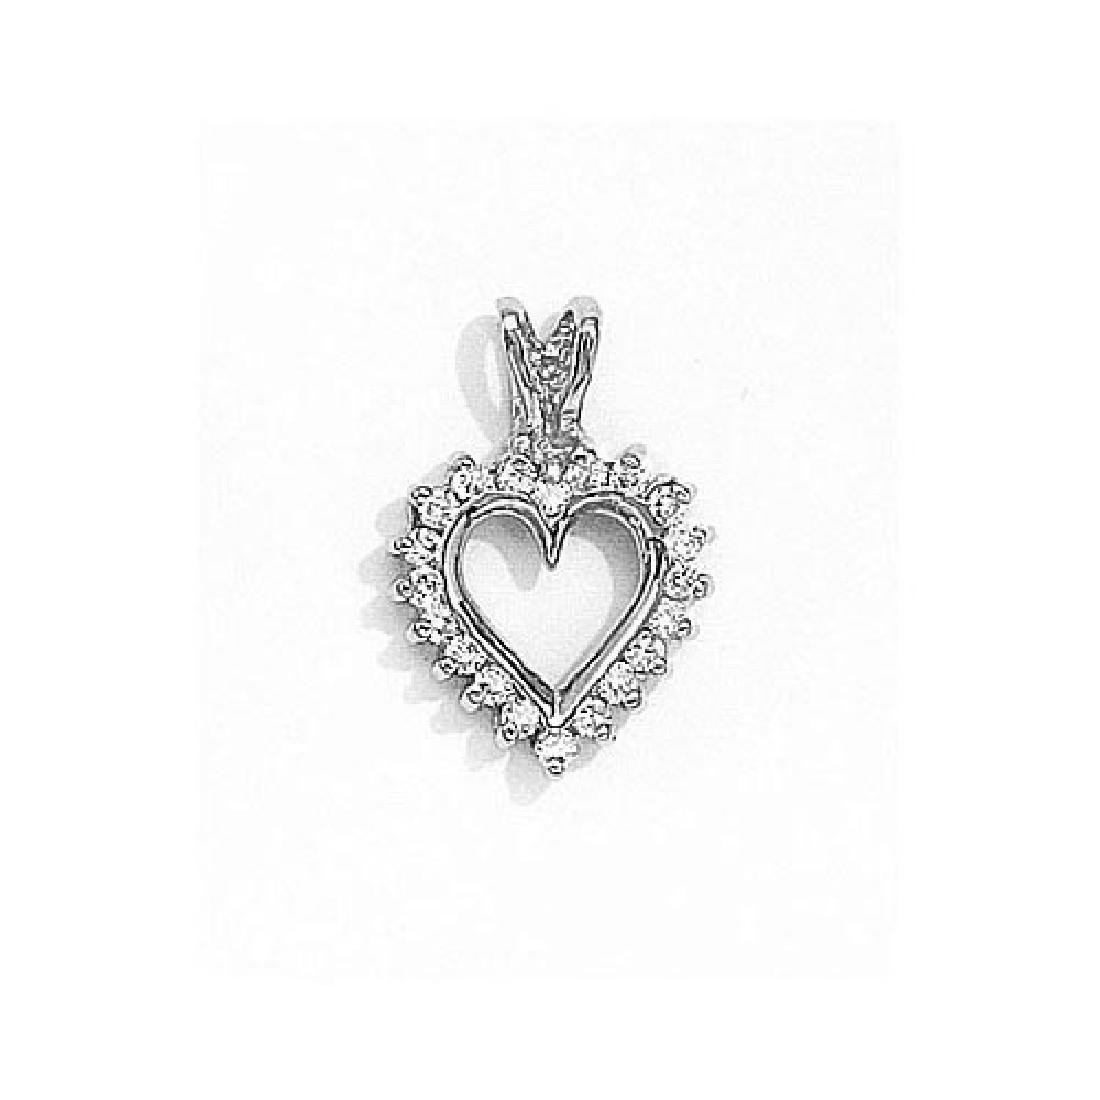 Certified 14K White Gold Diamond Heart Pendant 0.25 CTW